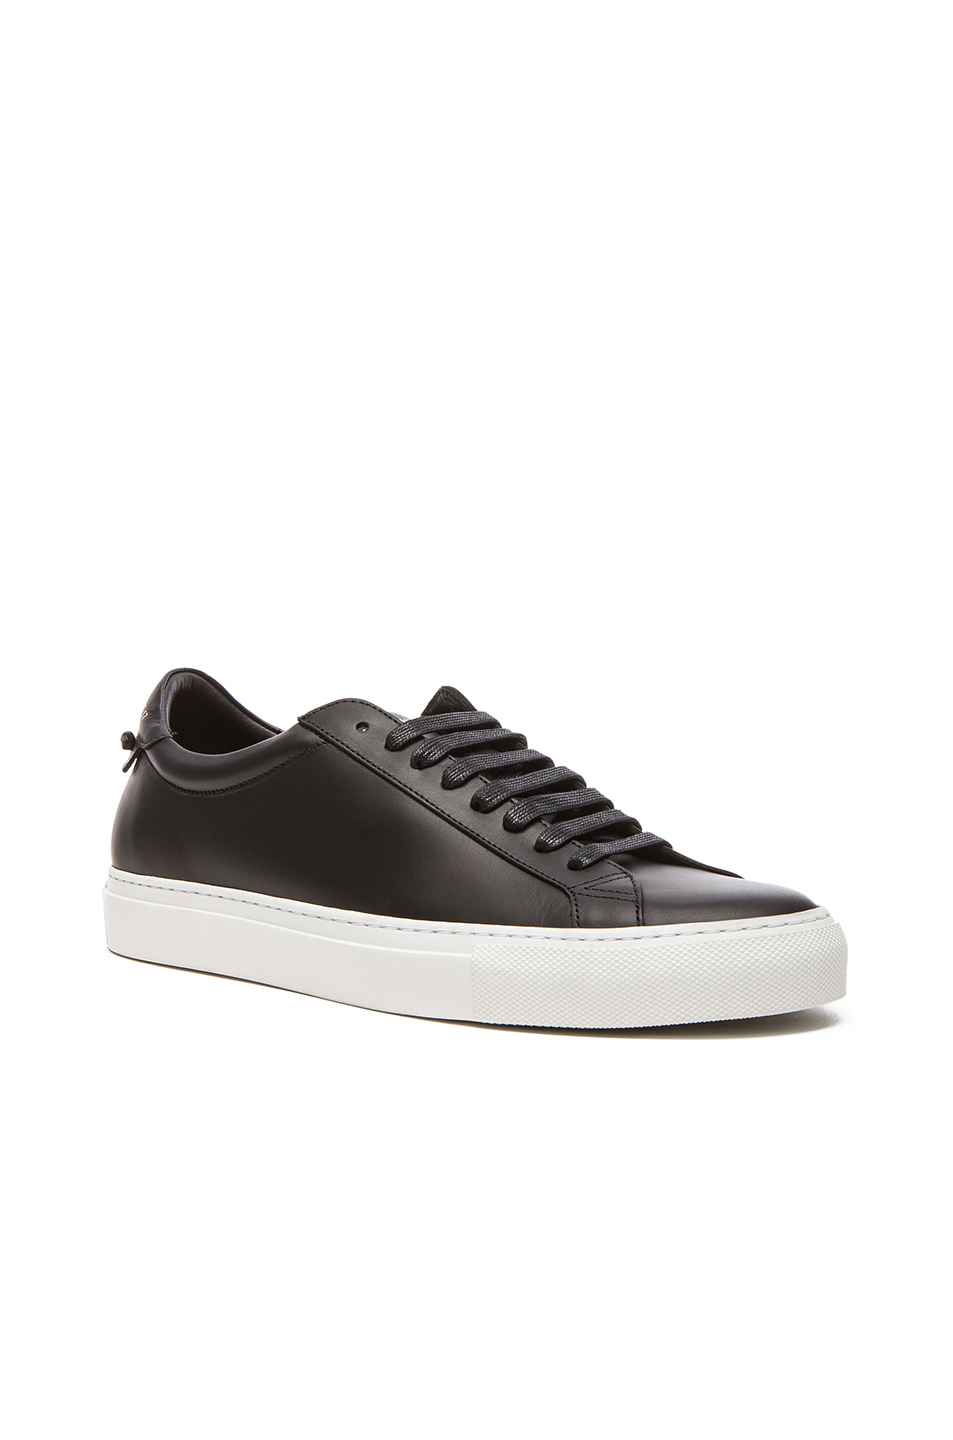 Givenchy Low-top Sneakers Urban Street Calfskin Logo Black In 001 Black